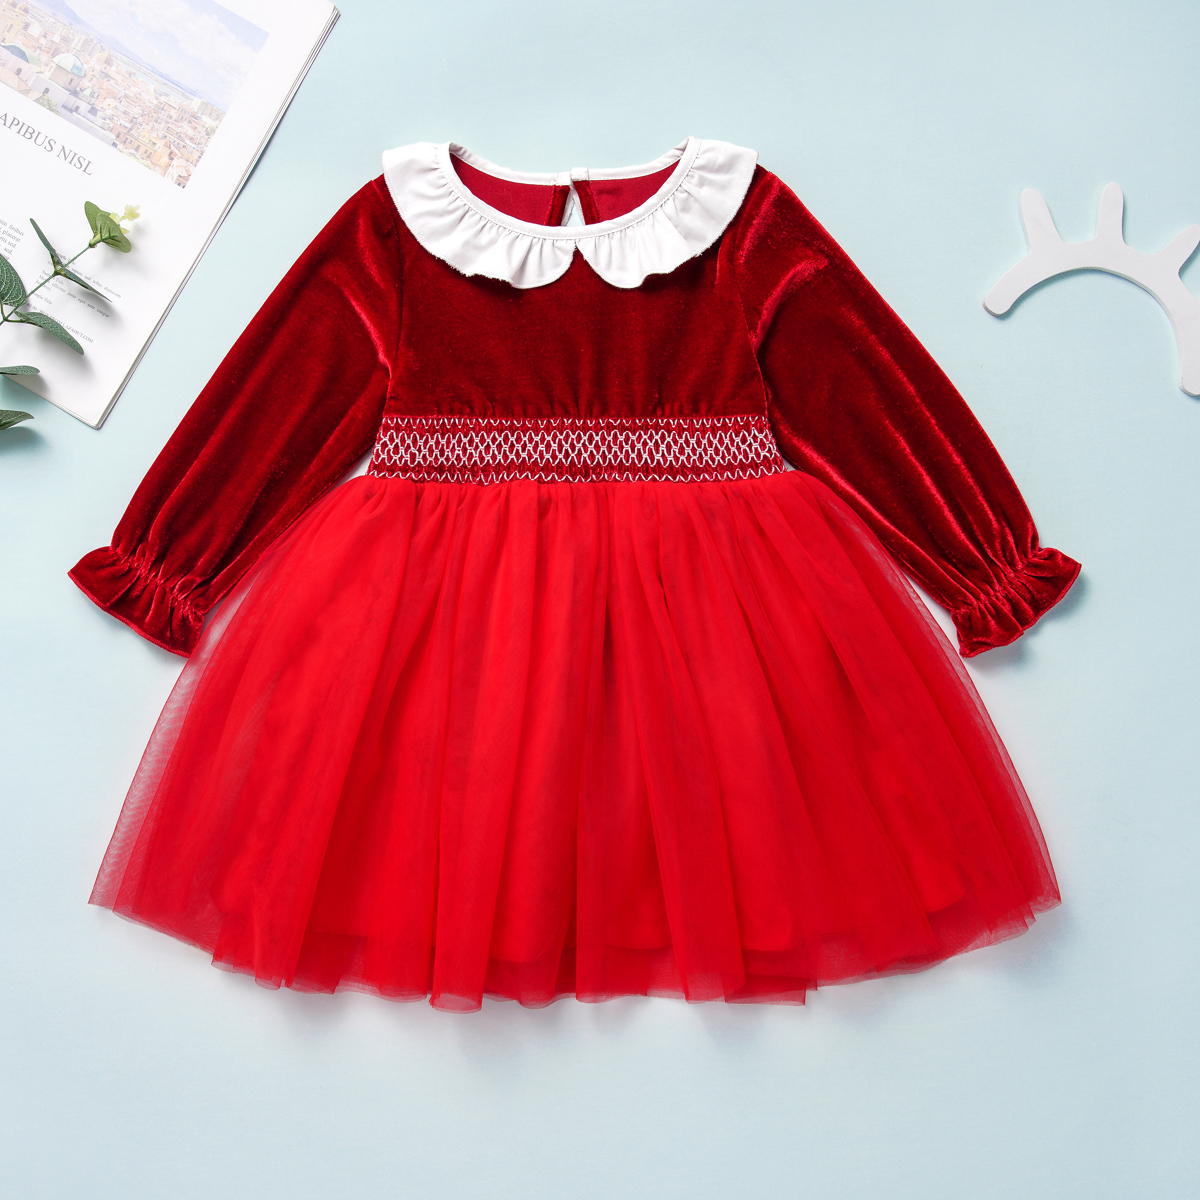 HIPAC Kids Dresses for Girls Princess Clothing Baby Dress Toddler Girl Party Clothes Velvet Draped Ball Gown Kid Children